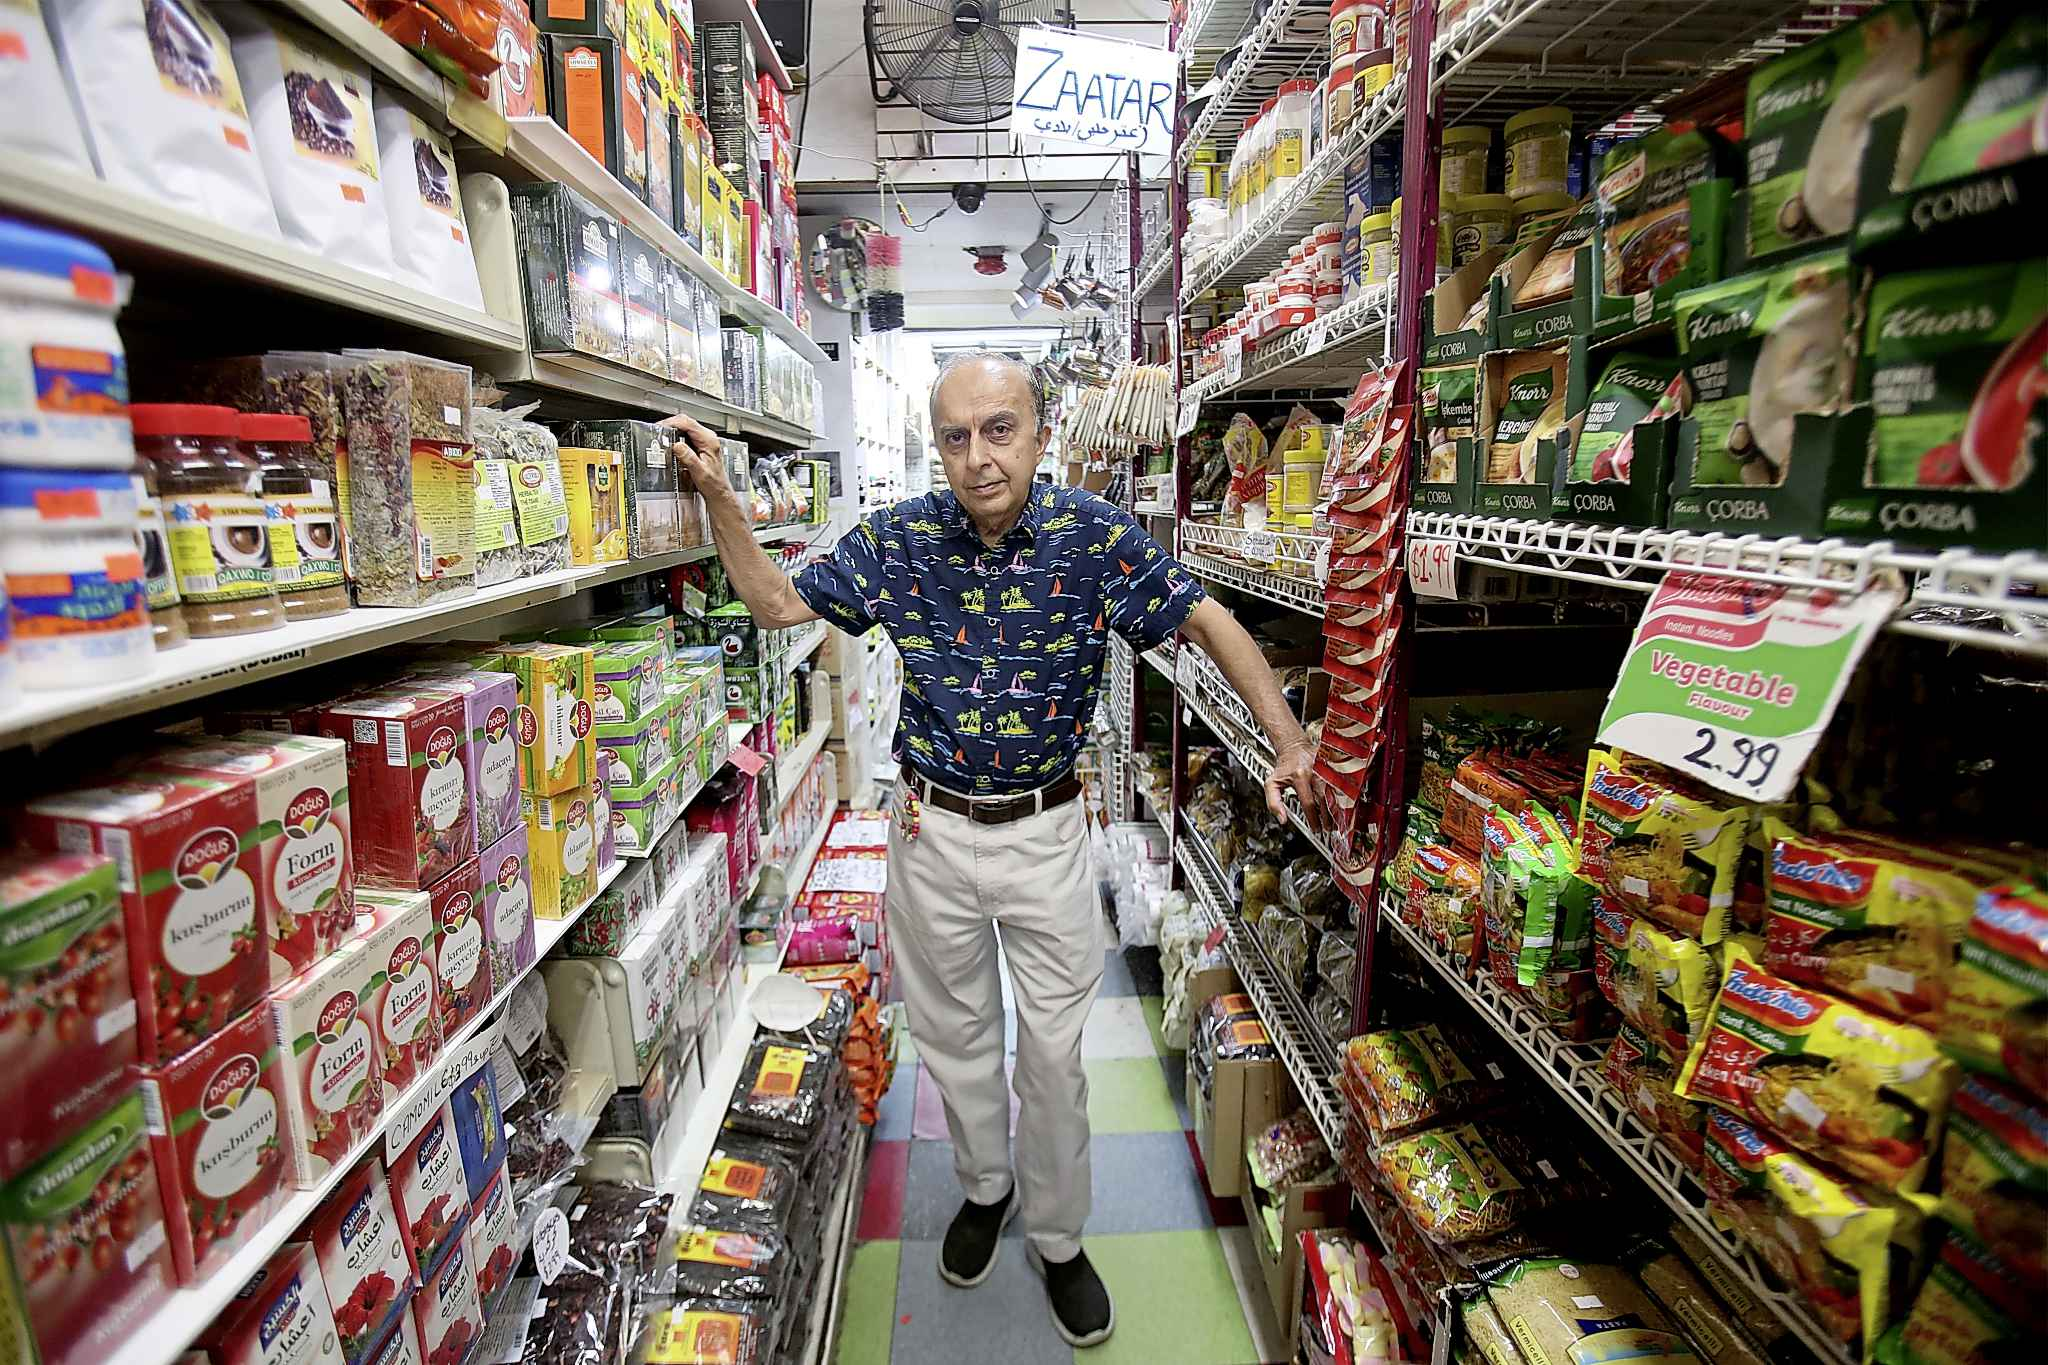 Halal stores serving as a safe space for newcomers might seem like a heavy responsibility to some, but Abdulrehman waves it off. Creating a safe space for everyone is just part of the job, he said